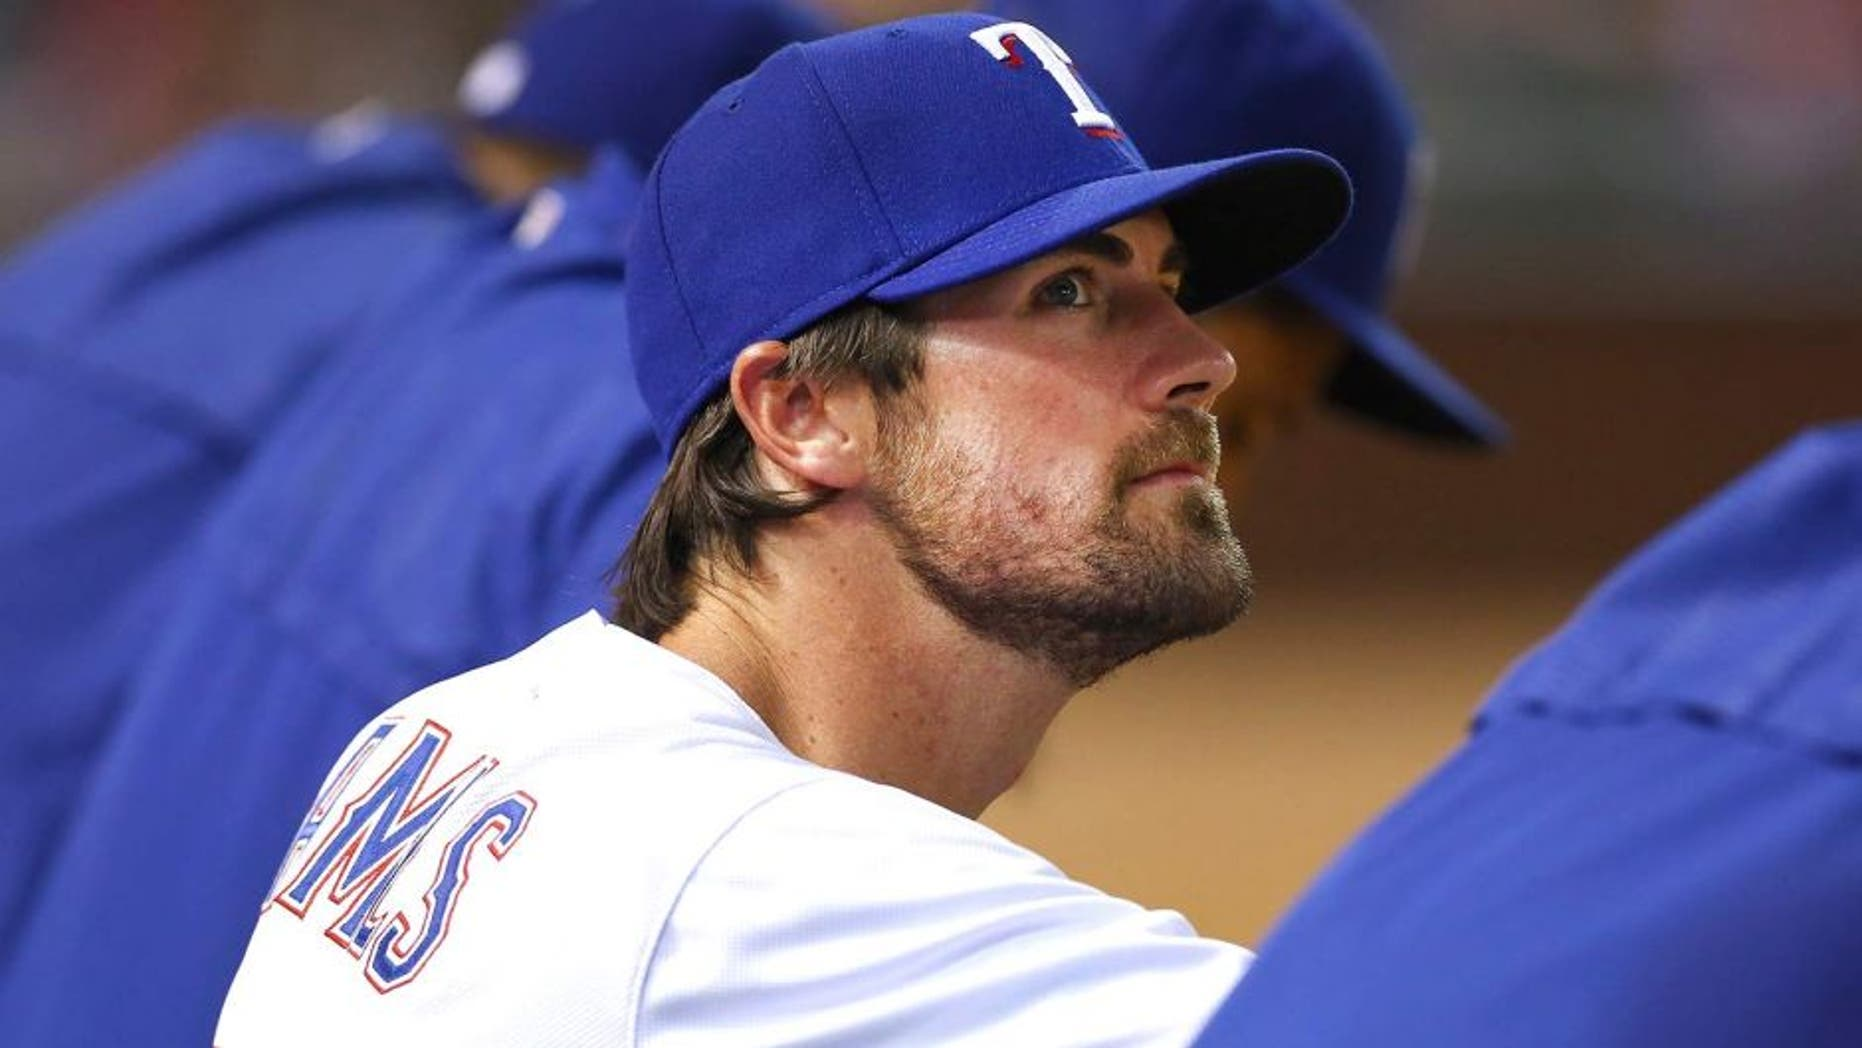 ARLINGTON, TX - JULY 31: Cole Hamels #35 of the Texas Rangers looks on as the Rangers take on the San Francisco Giants in the bottom of the eighth inning at Globe Life Park in Arlington on July 31, 2015 in Arlington, Texas. (Photo by Tom Pennington/Getty Images)